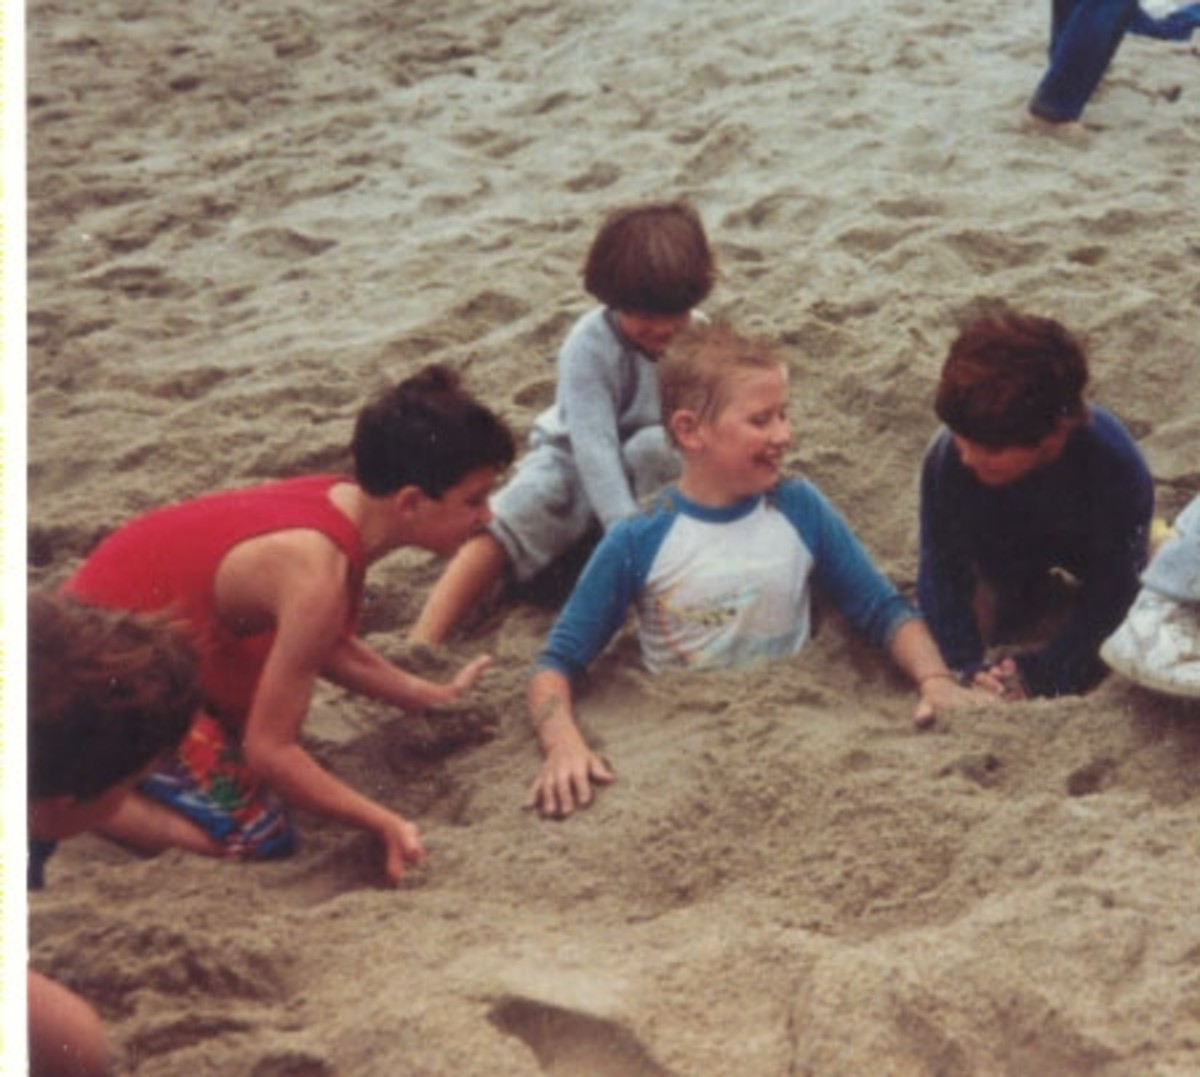 Jason's friends burying him in the sand at one of the numerous beach birthday parties at Sycamore Cove State Beach